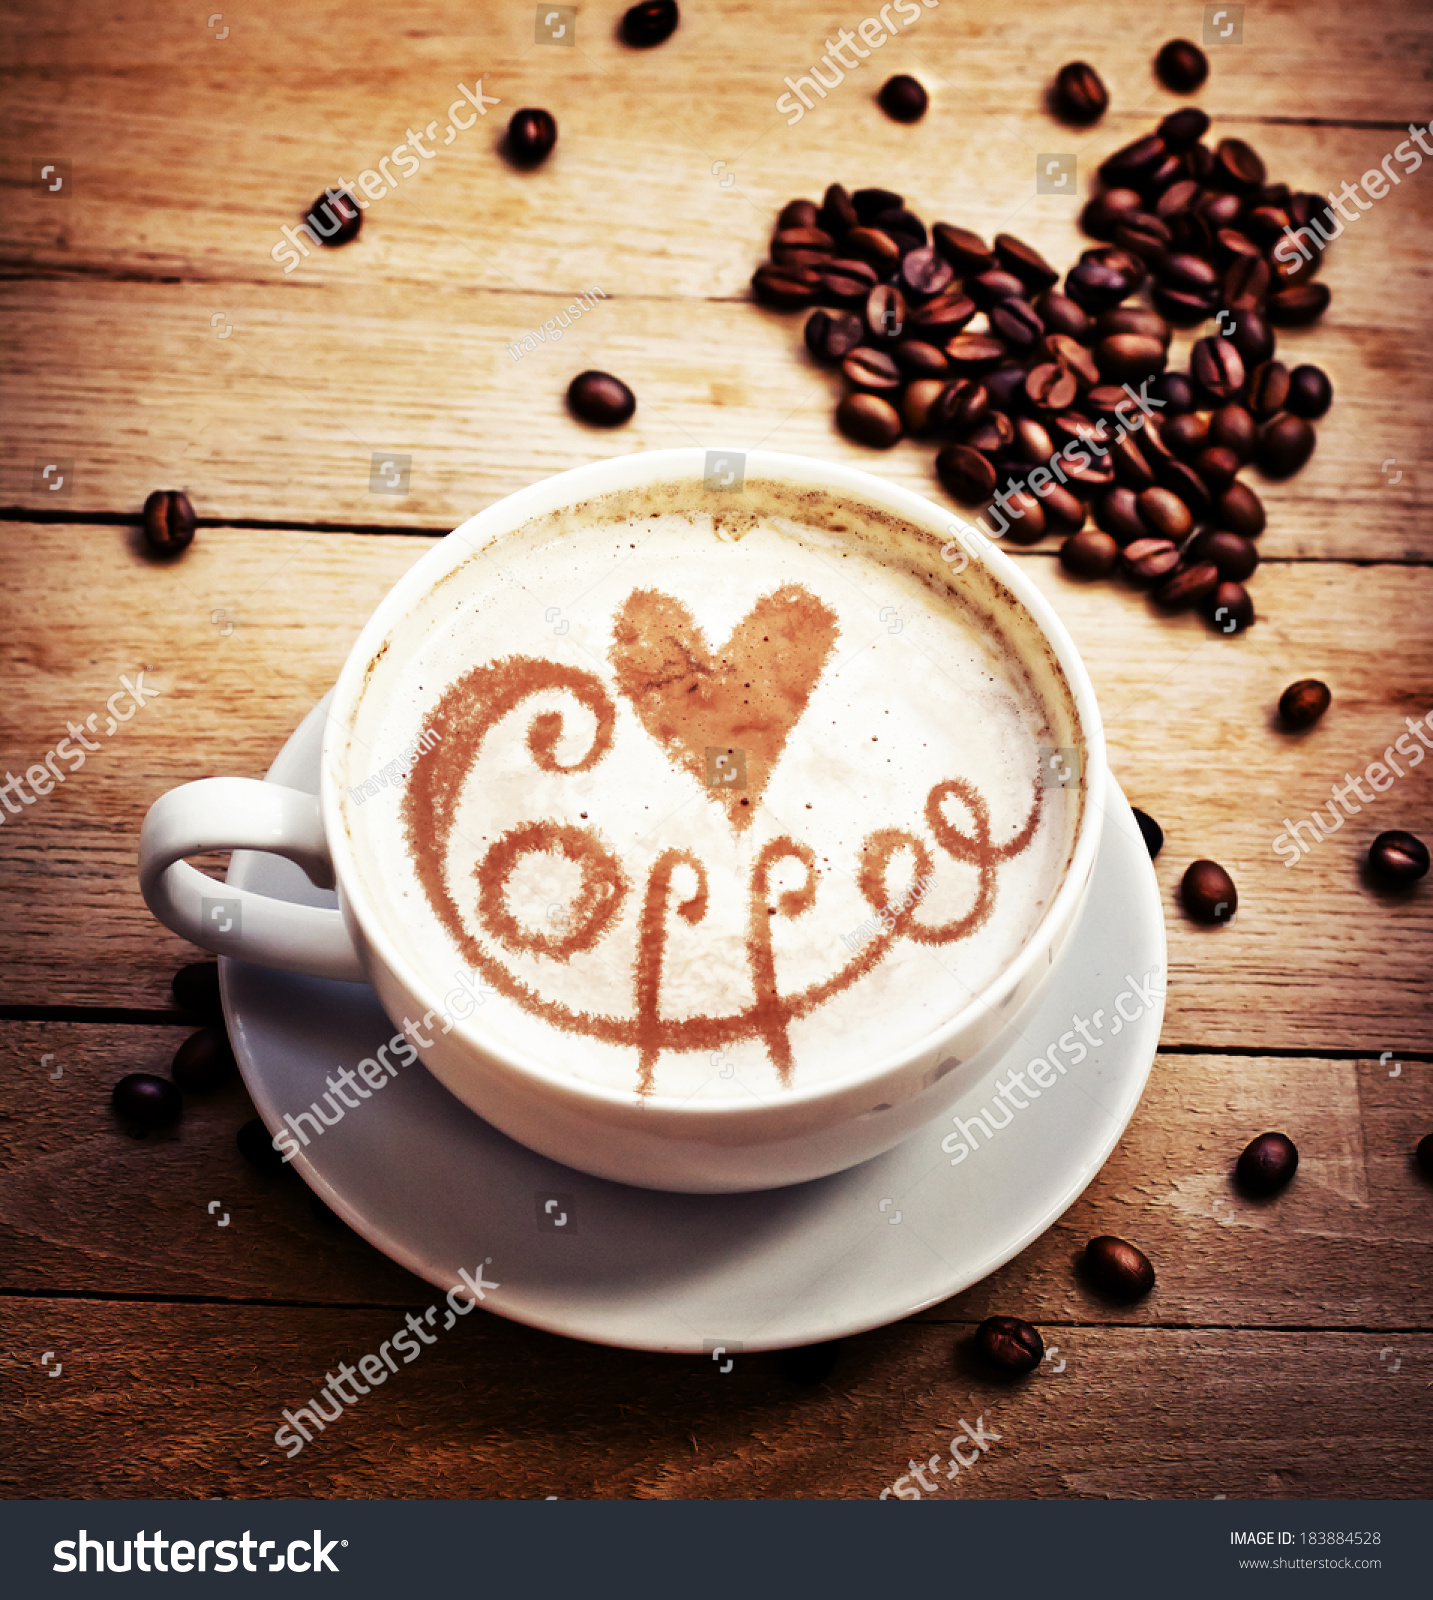 Cup Coffee Love Cup Heart Drawing Stock Photo 183884528